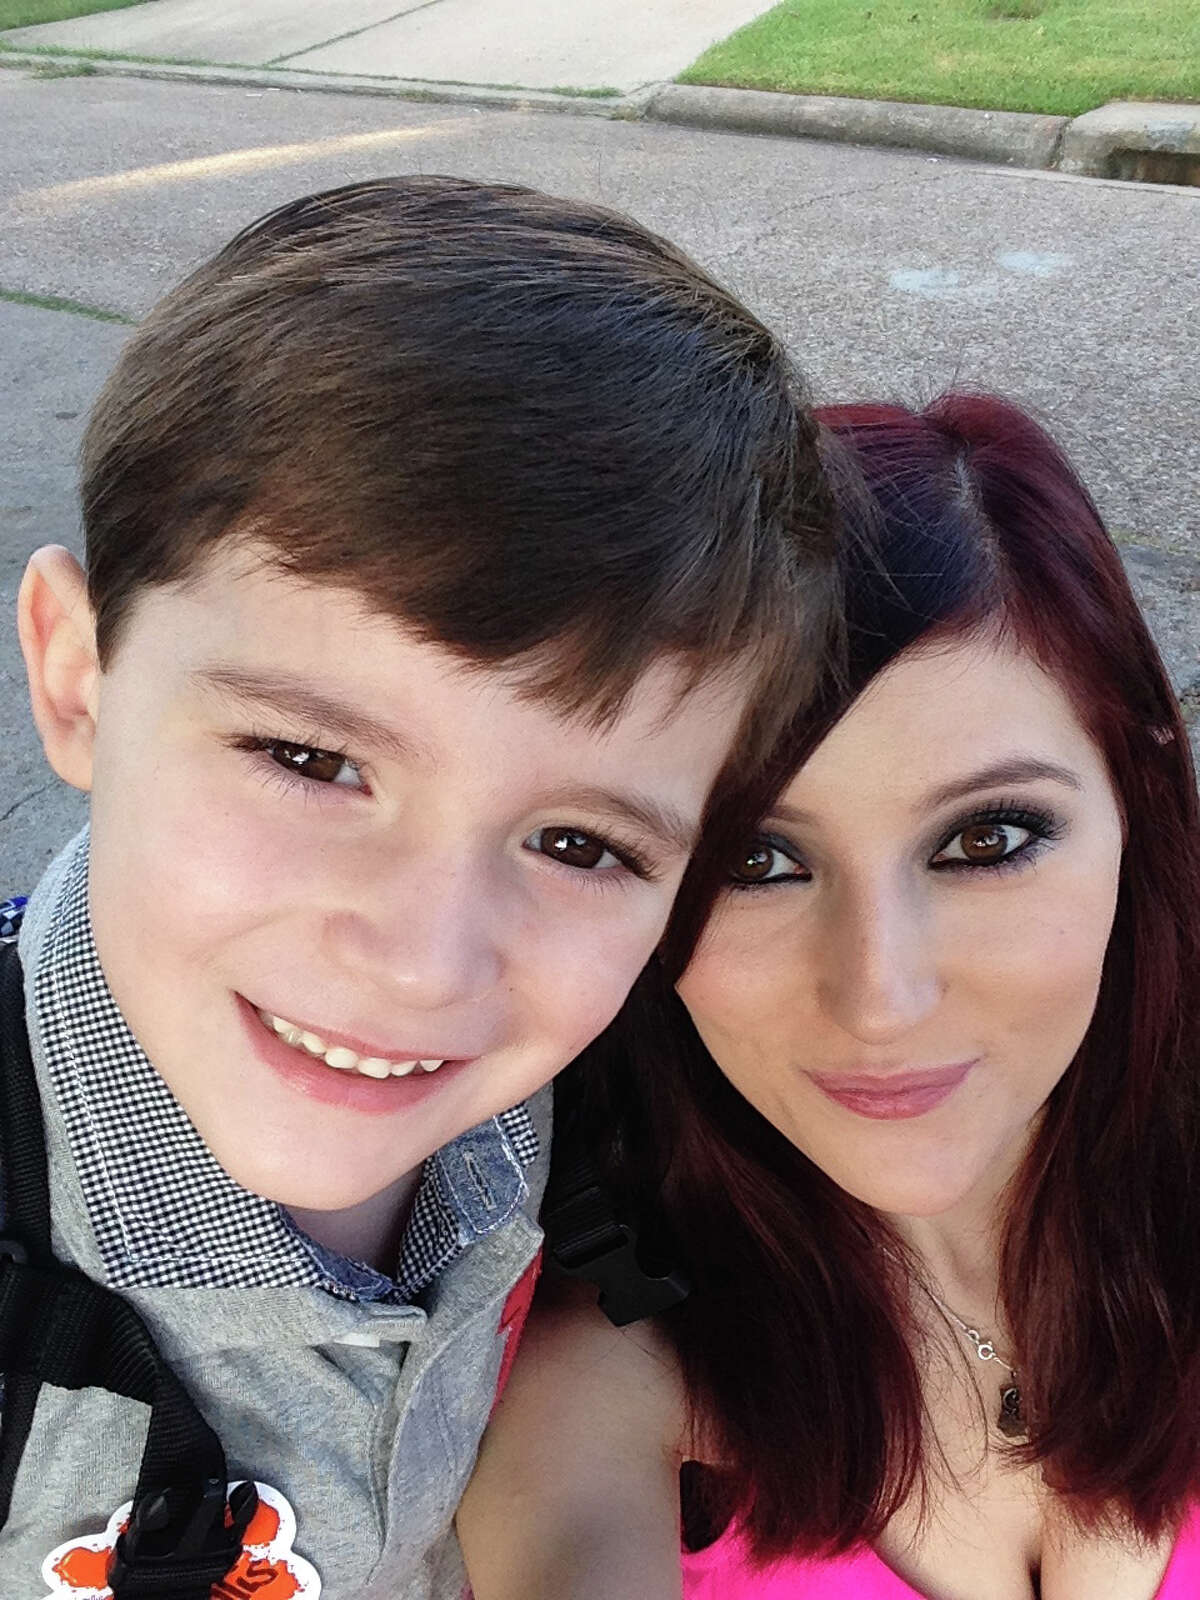 Victim Monica Ramirez is shown with her 6-year-old son, Tyler